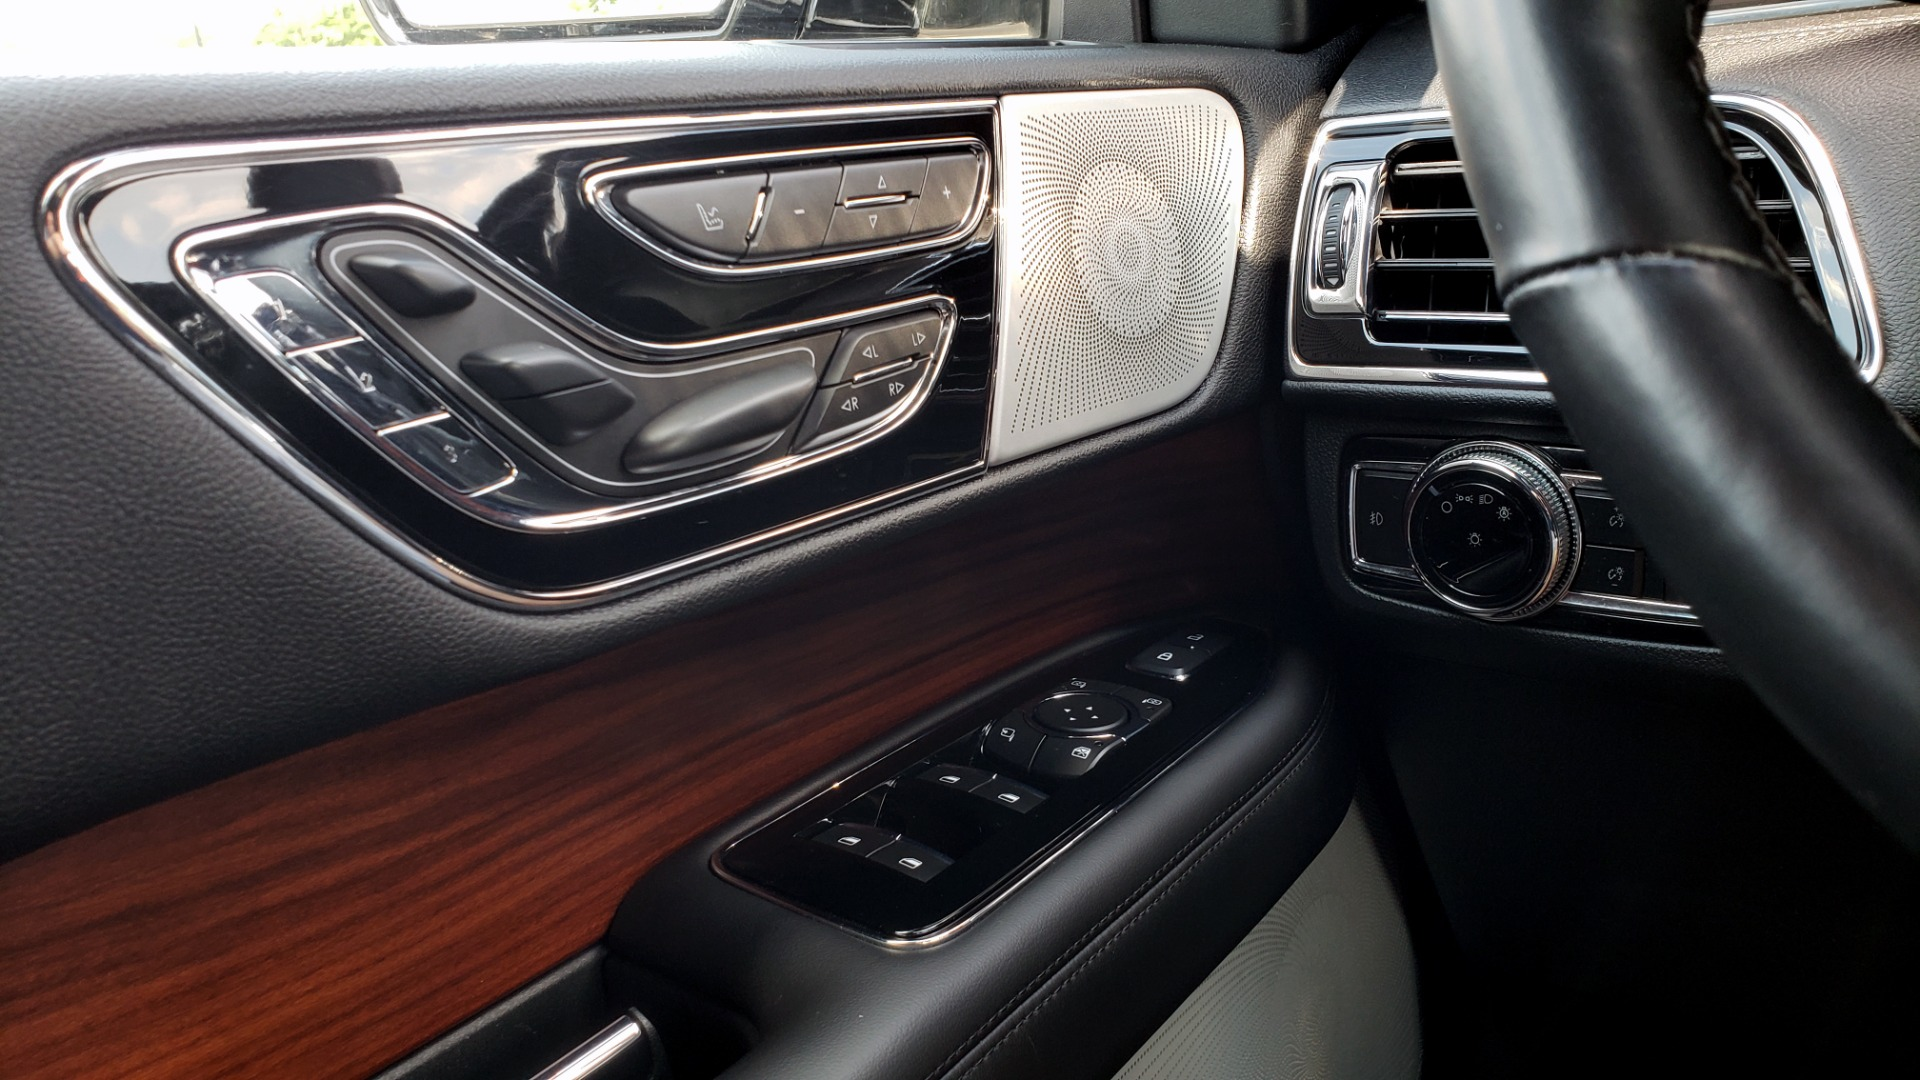 Used 2019 Lincoln NAVIGATOR RESERVE 4X4 / NAV / PANO-ROOF / REVEL ULTIMA AUDIO / 3-ROW / REARVIEW for sale $74,795 at Formula Imports in Charlotte NC 28227 38